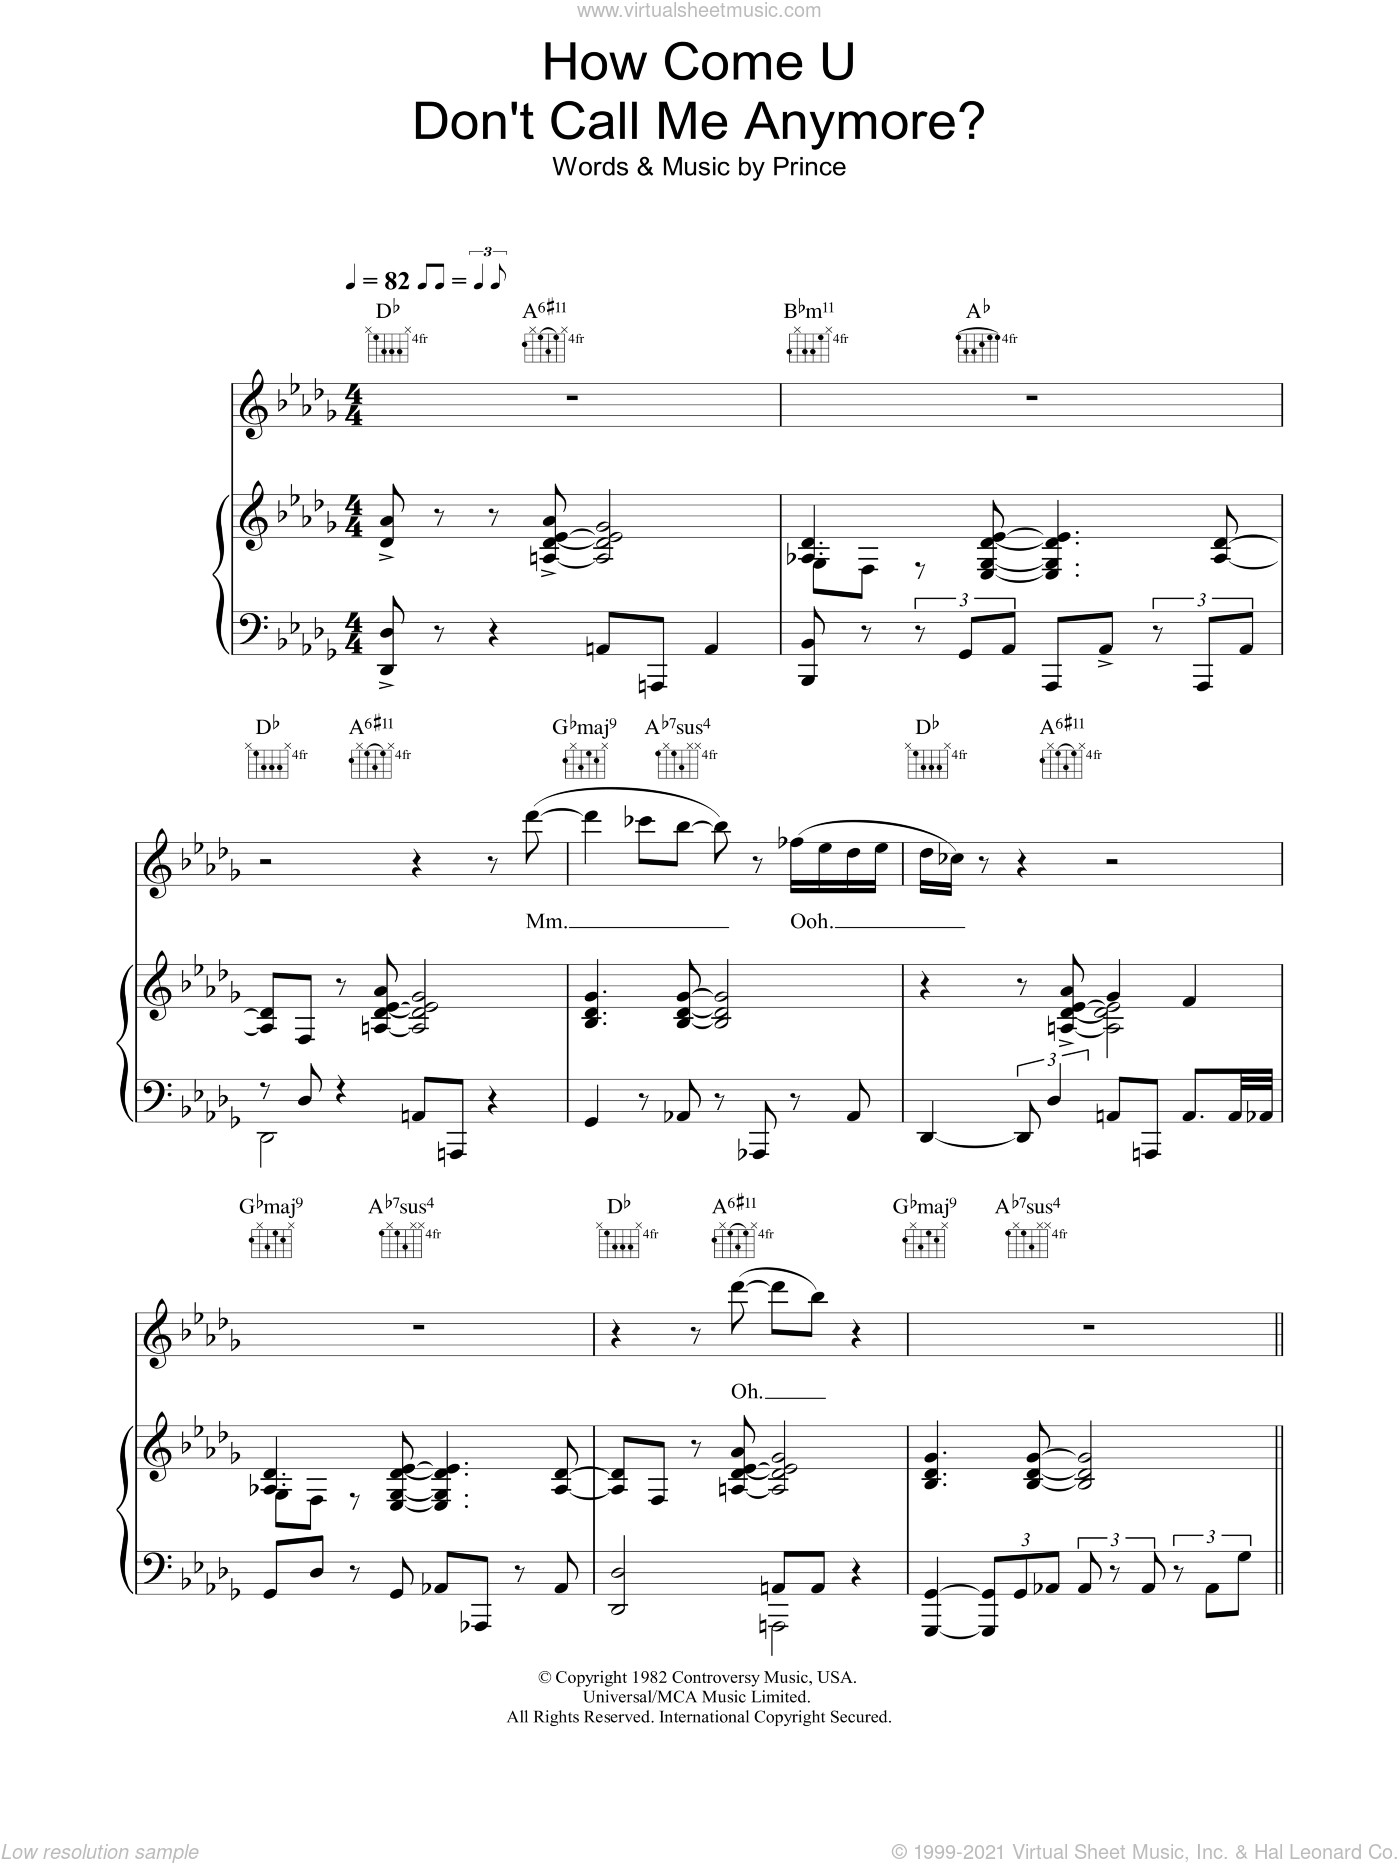 How Come U Don't Call Me Anymore sheet music for voice, piano or guitar by Prince, intermediate skill level